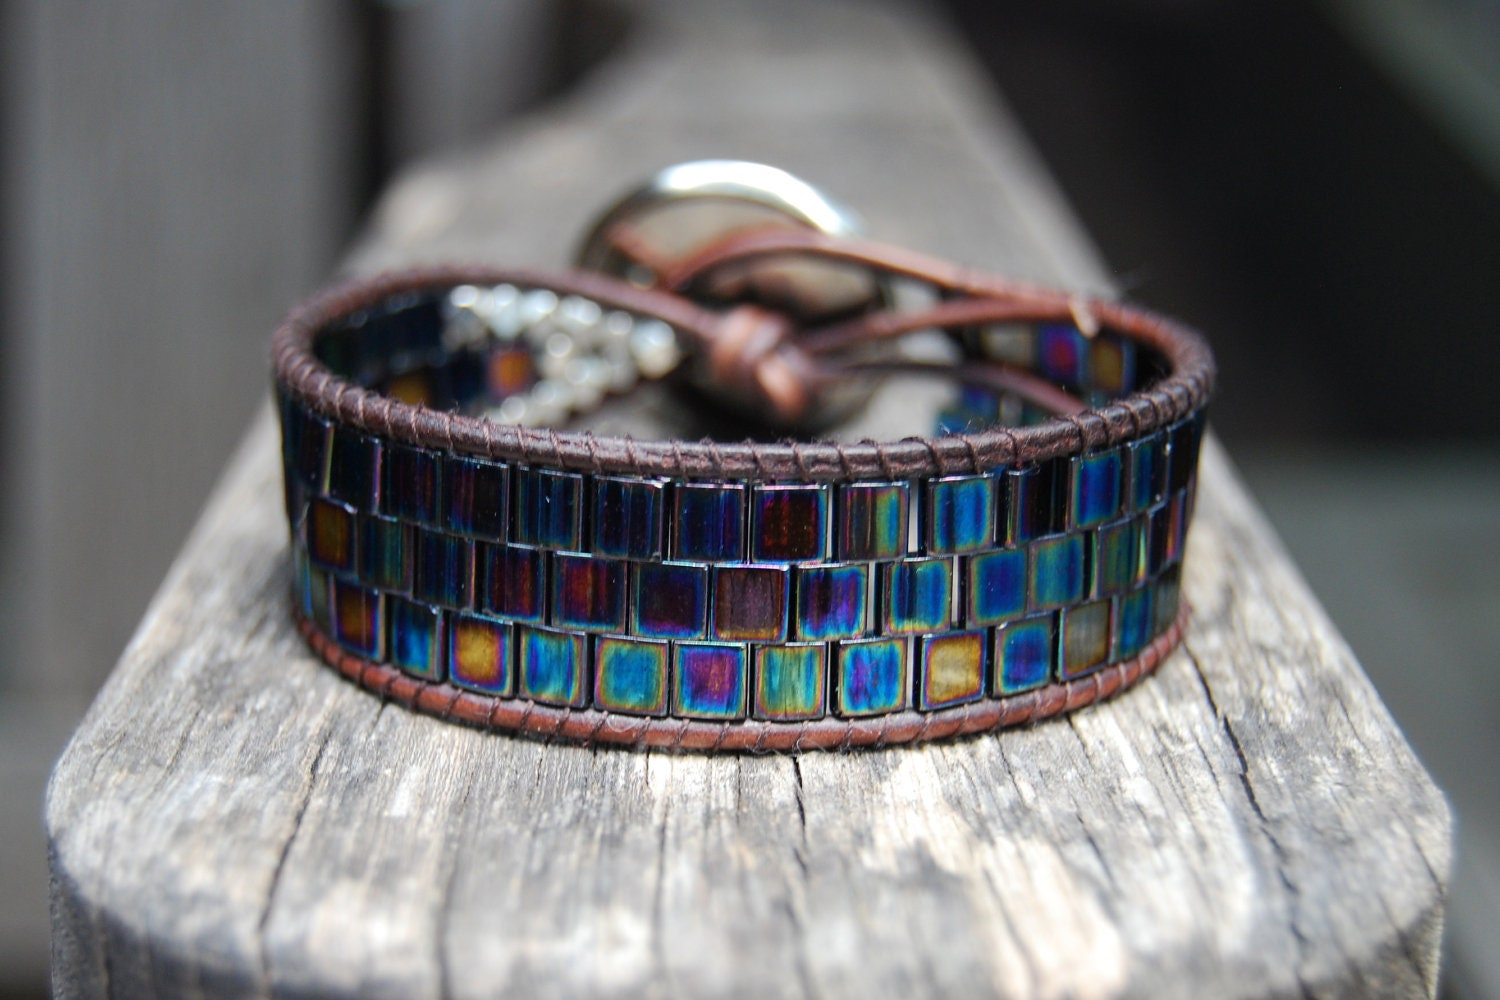 Wrapped Leather Bracelet with Metallic Blue / Purple / Turquoise Tila Beads, Silver Rondelles & Vintage Star Button - Shooting Star